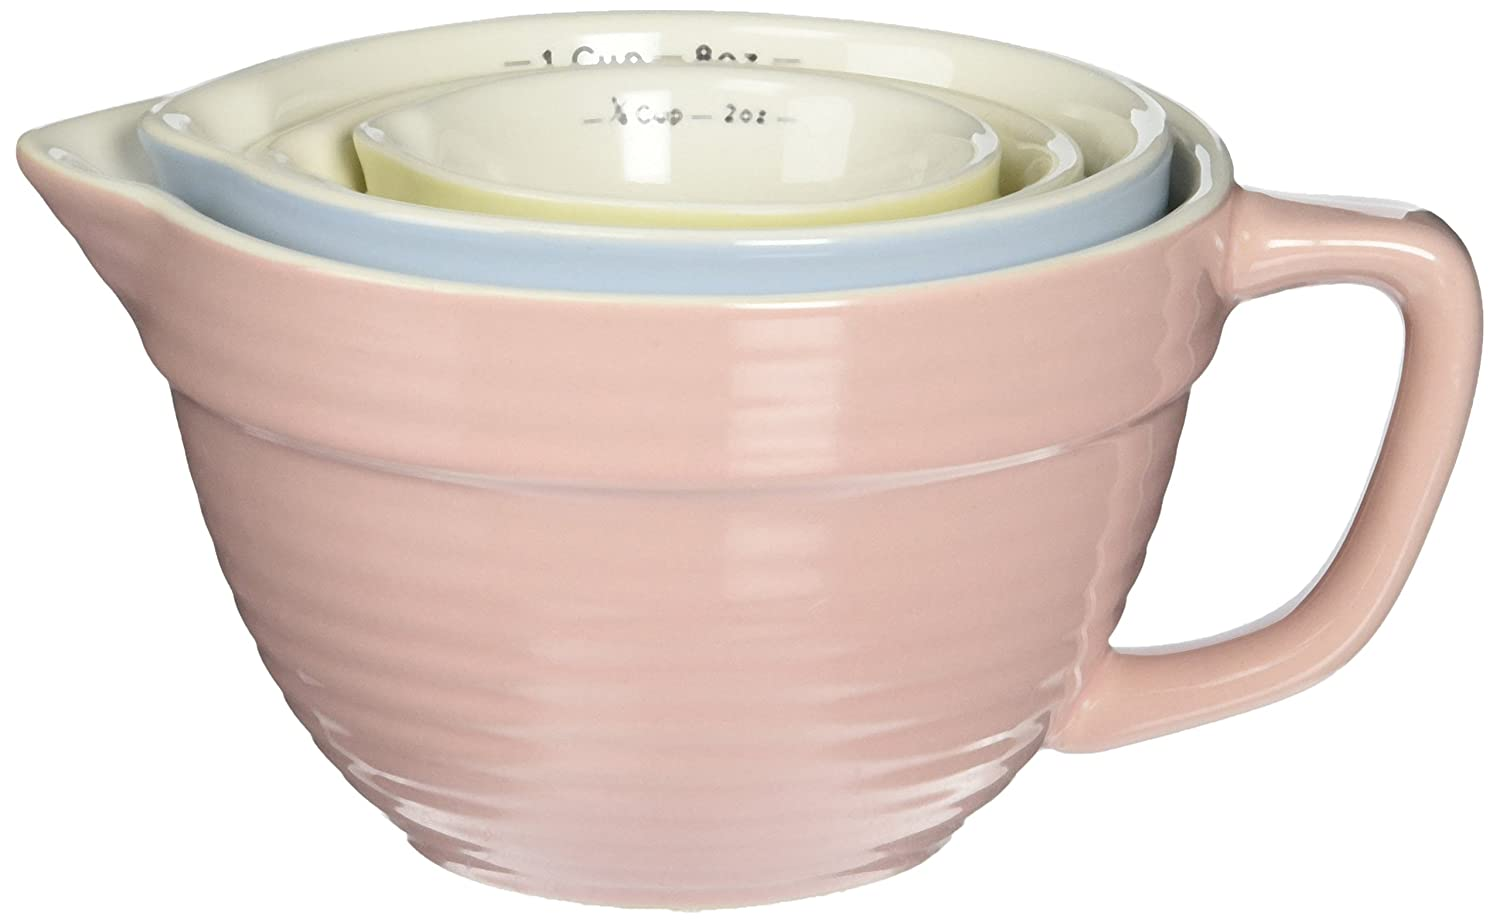 Creative Co-op Stoneware Measuring Cups, Multicolored, Set of 4 DA1803